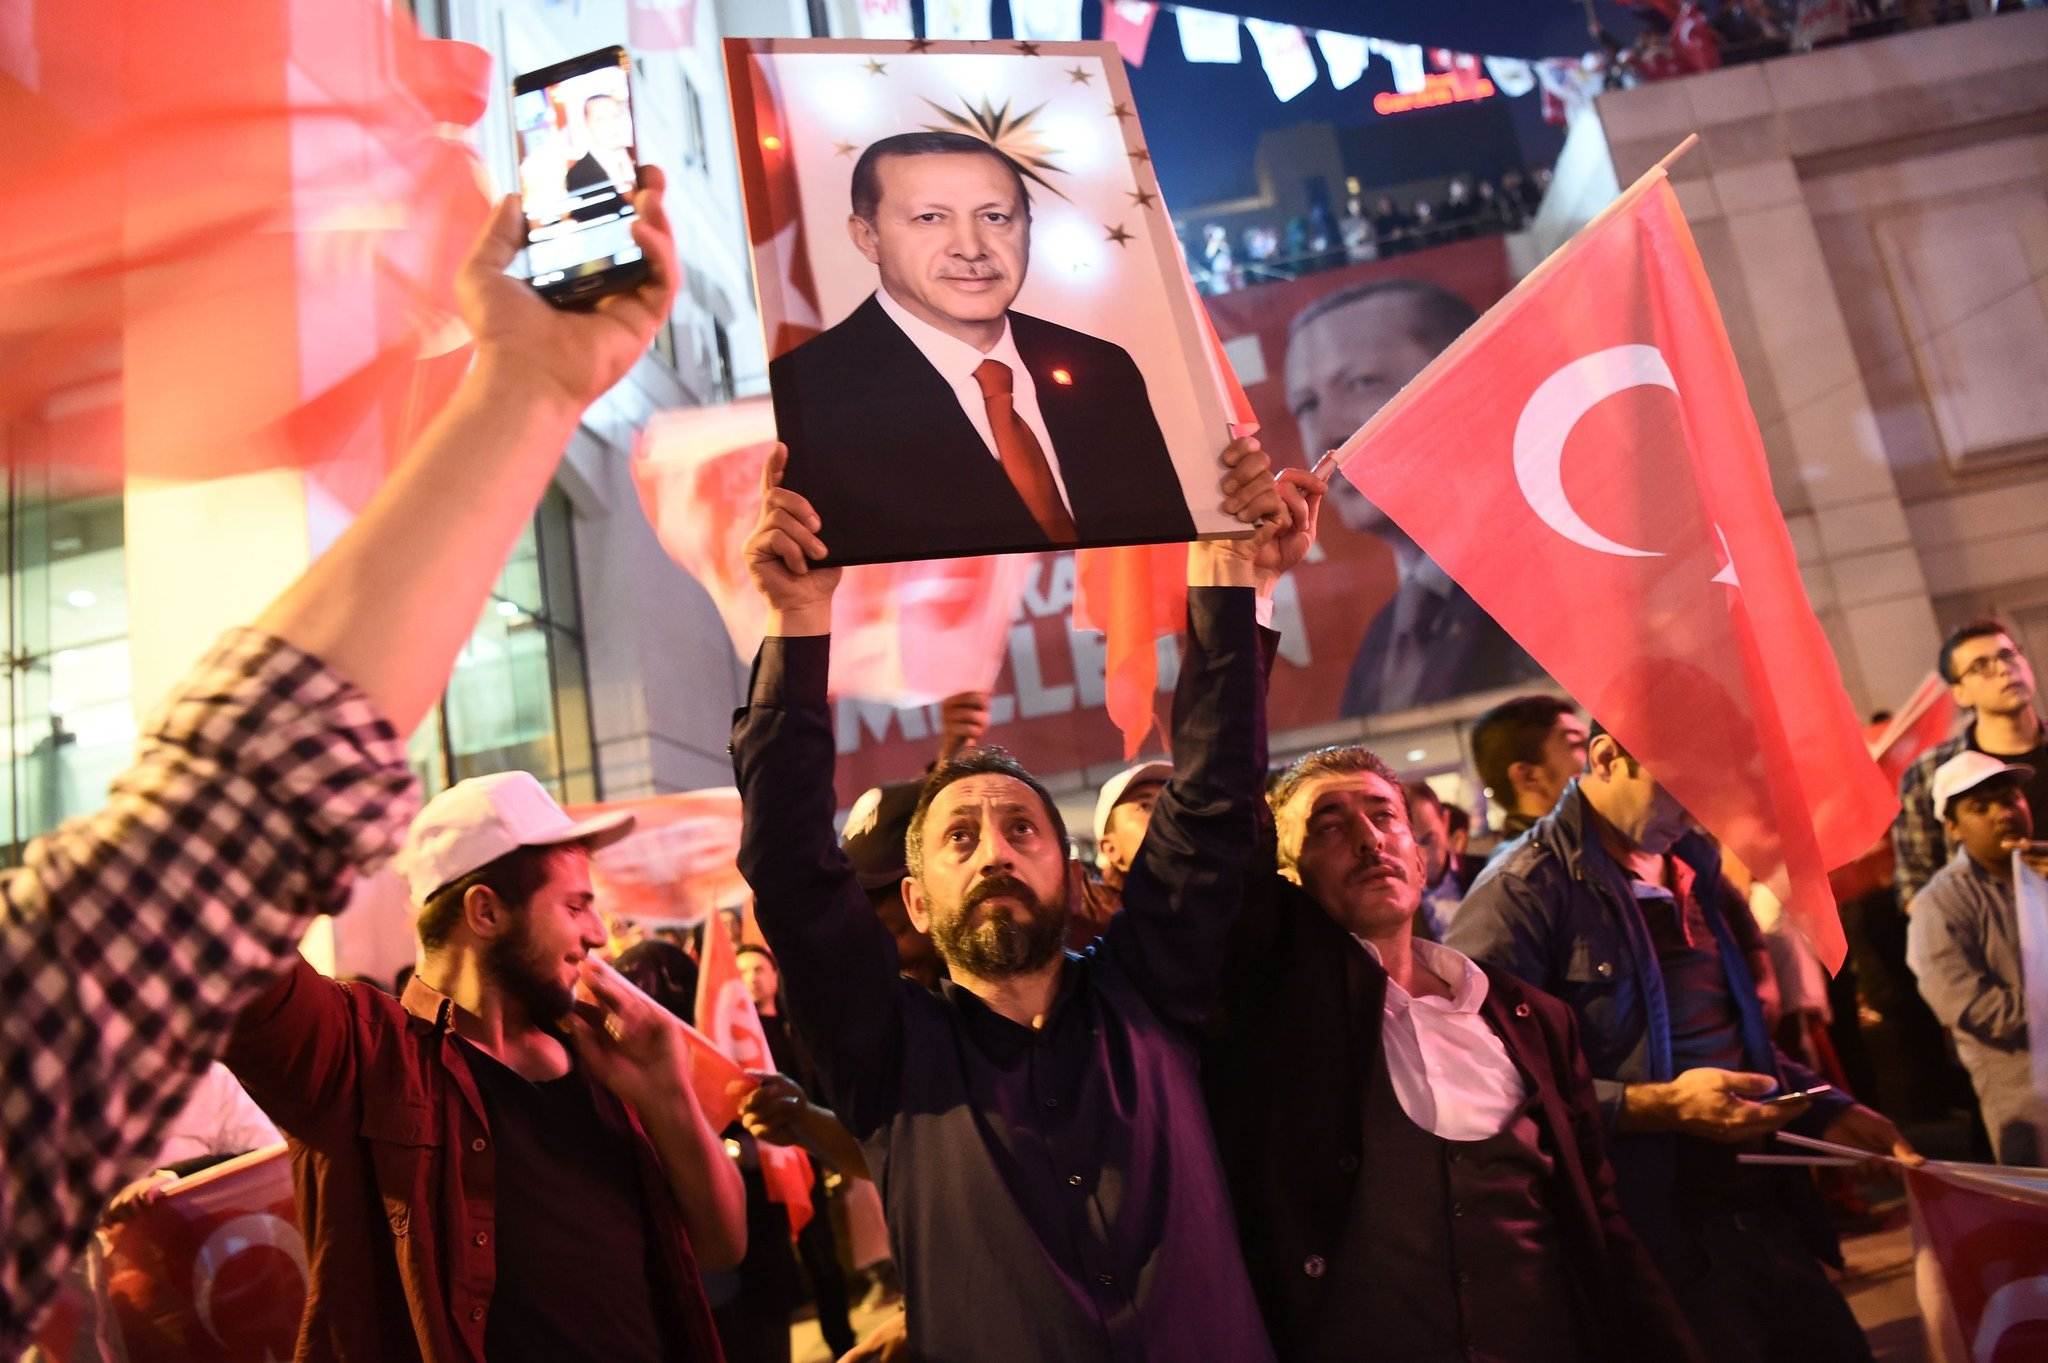 Supporters of President Recep Tayyip Erdoğan gather at a rally to campaign for the 'yes' vote in the recent Turkish referendum. || Ozan Kose/Agence France-Presse, Getty Images